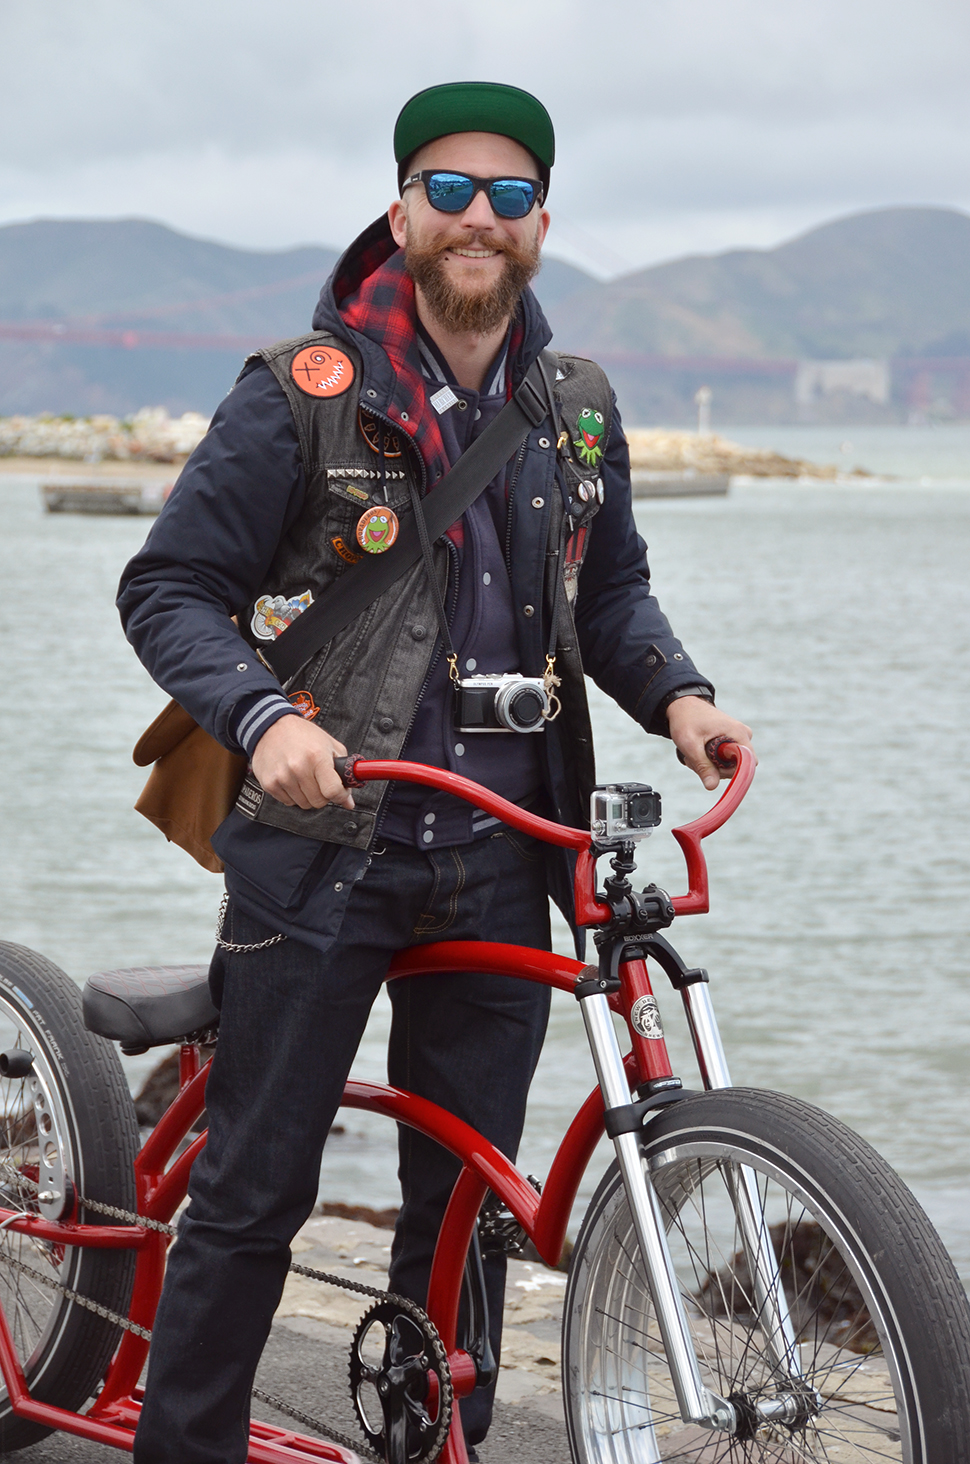 Helloitsvalentine_SanFrancisco_GoldenGateBridge_Chopaderos_bike_4